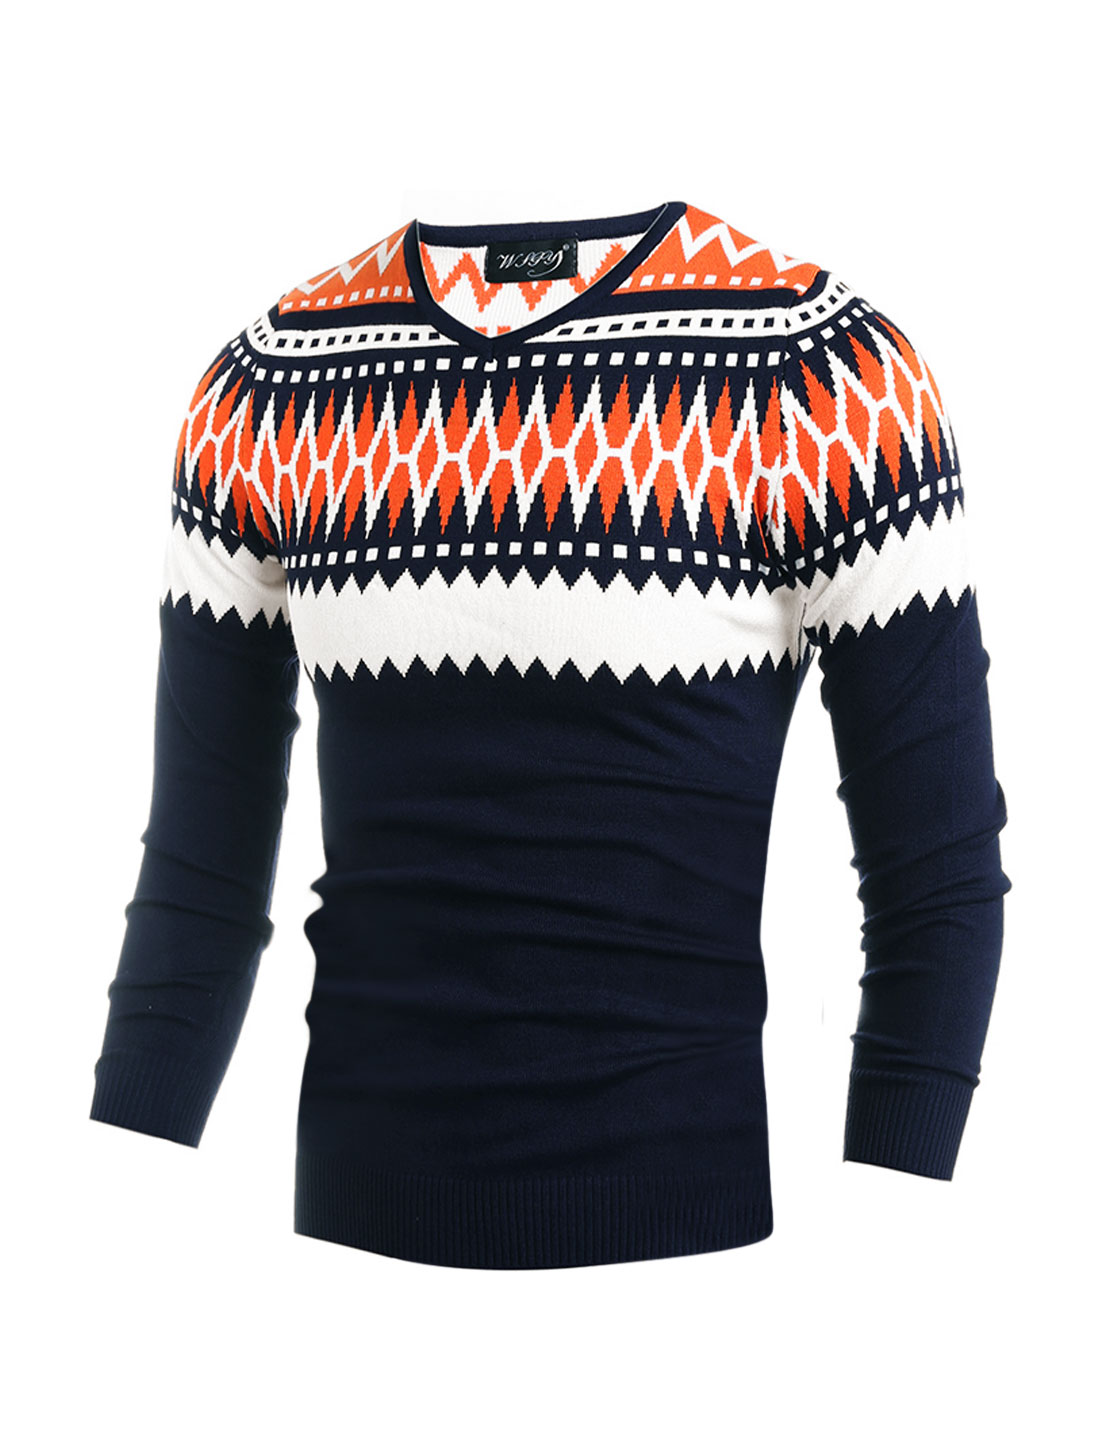 Men V Neck Geometric Contrast Color Slim Fit Knit Shirt Orange M